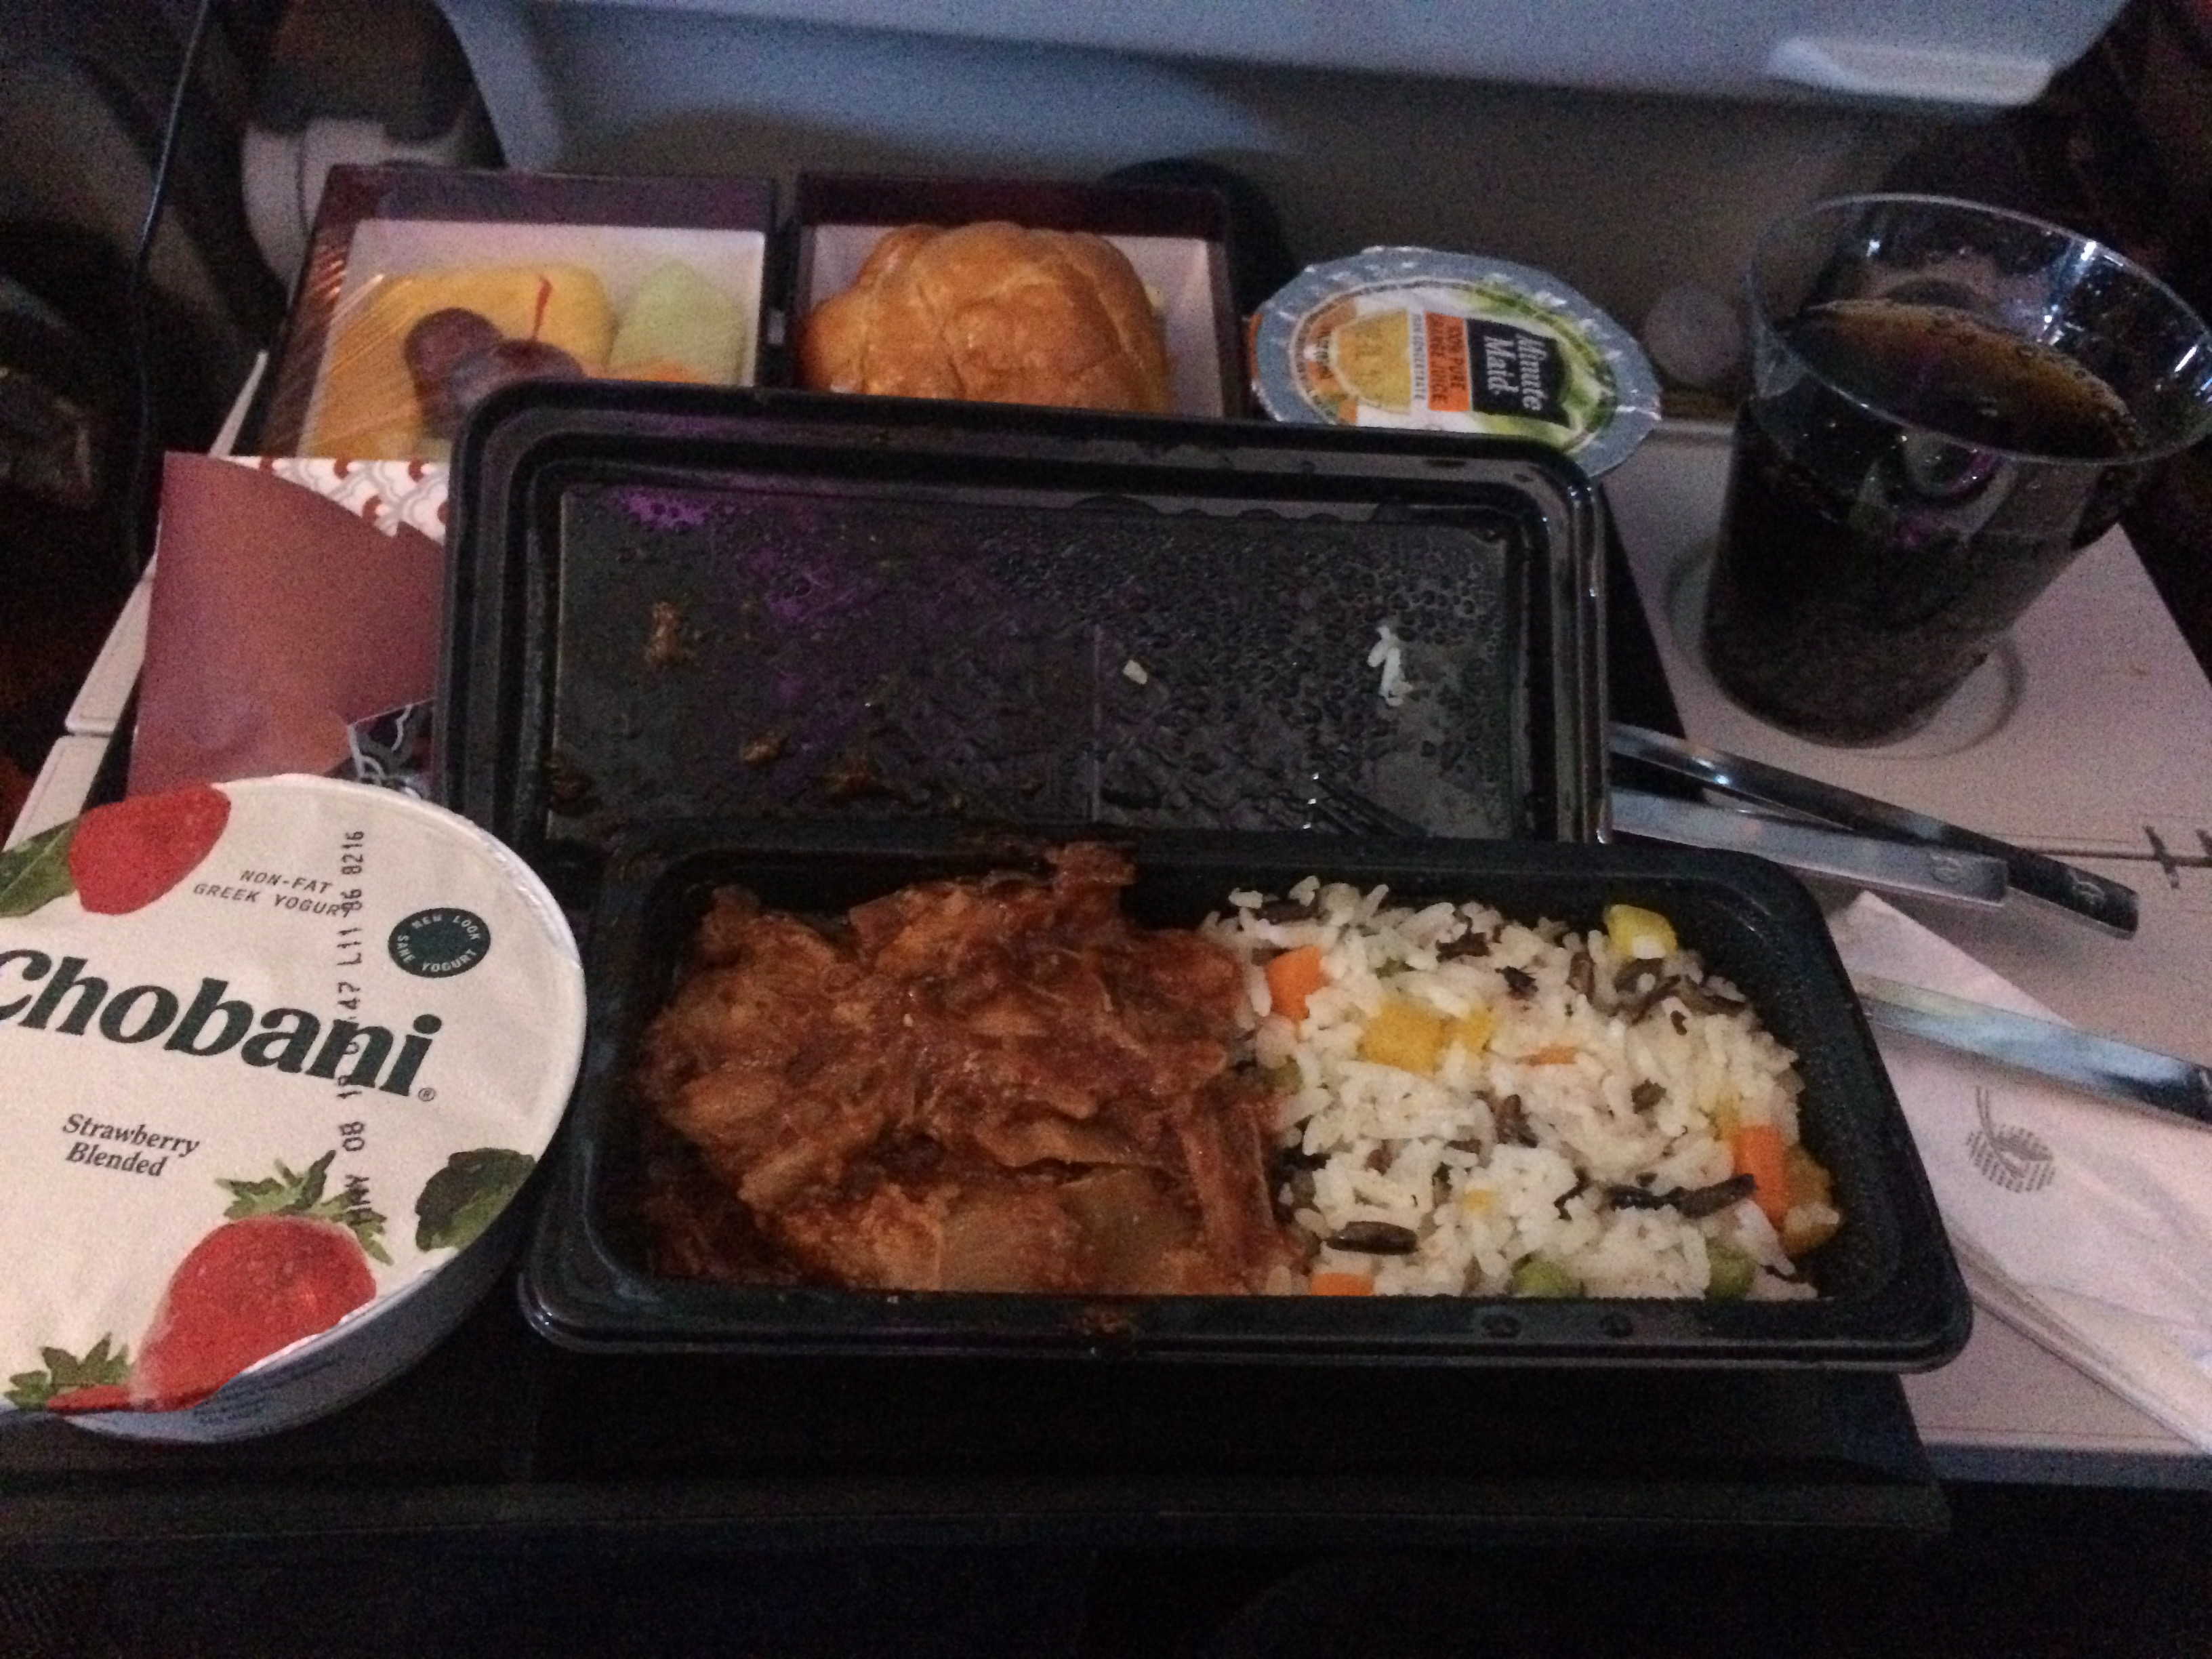 qatar airways chicken tomato meal.JPG